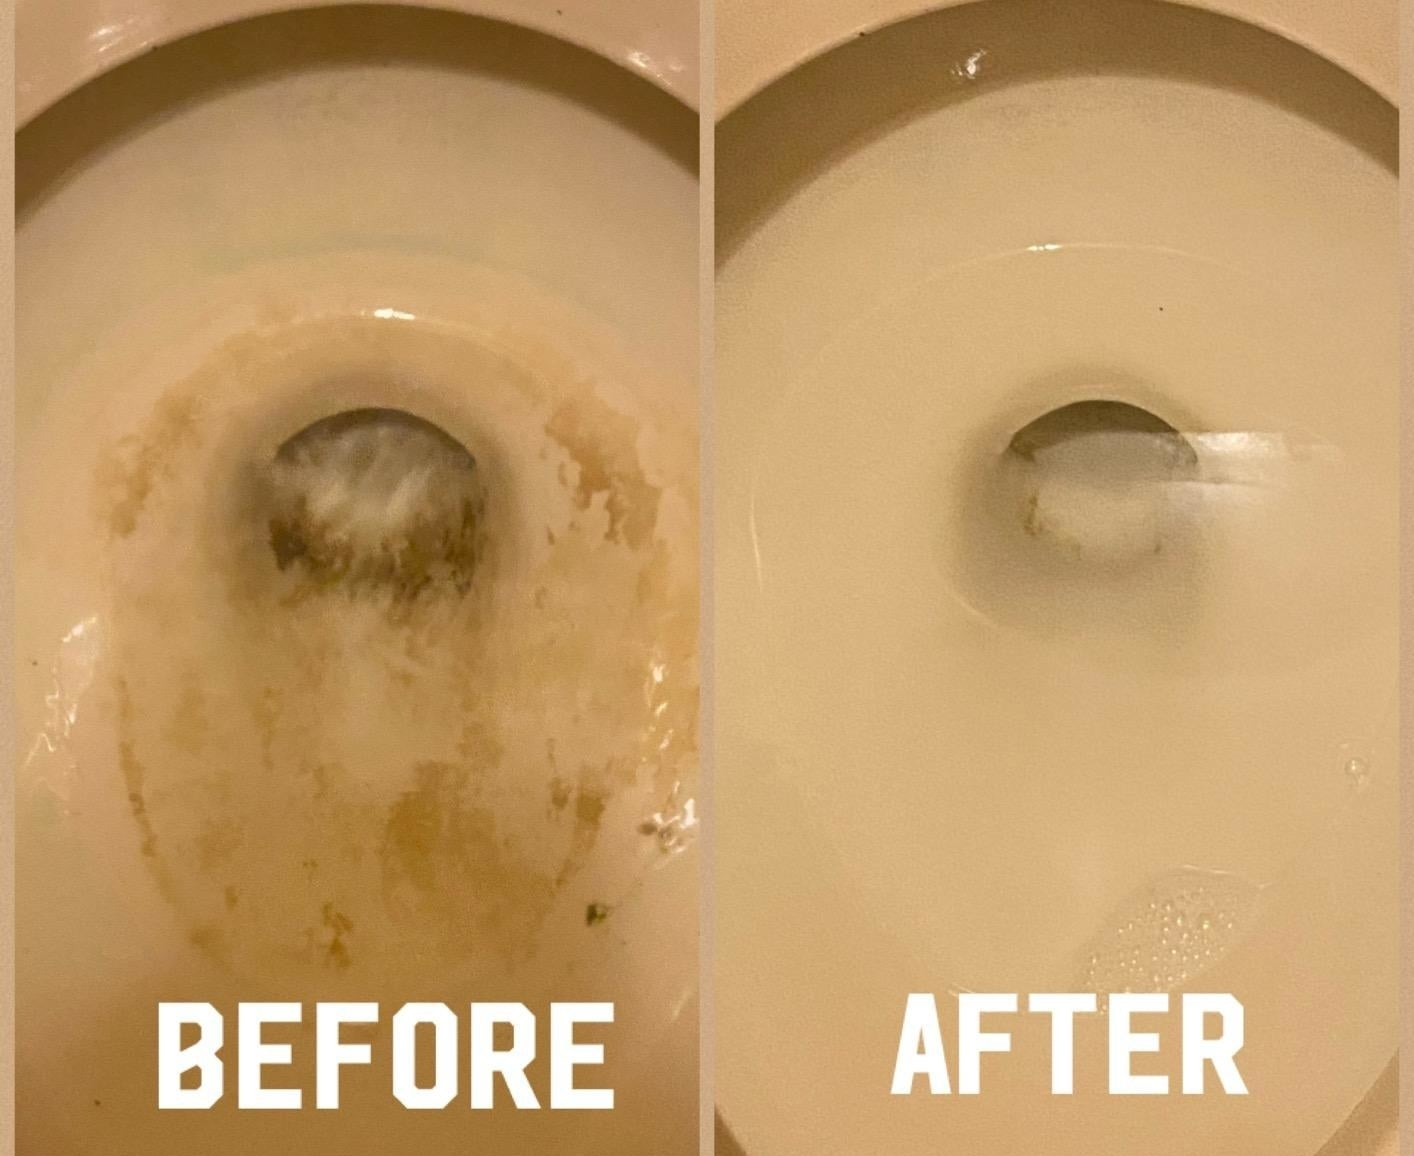 a split reviewer image of a toilet before and after using the pumice stone scrubber